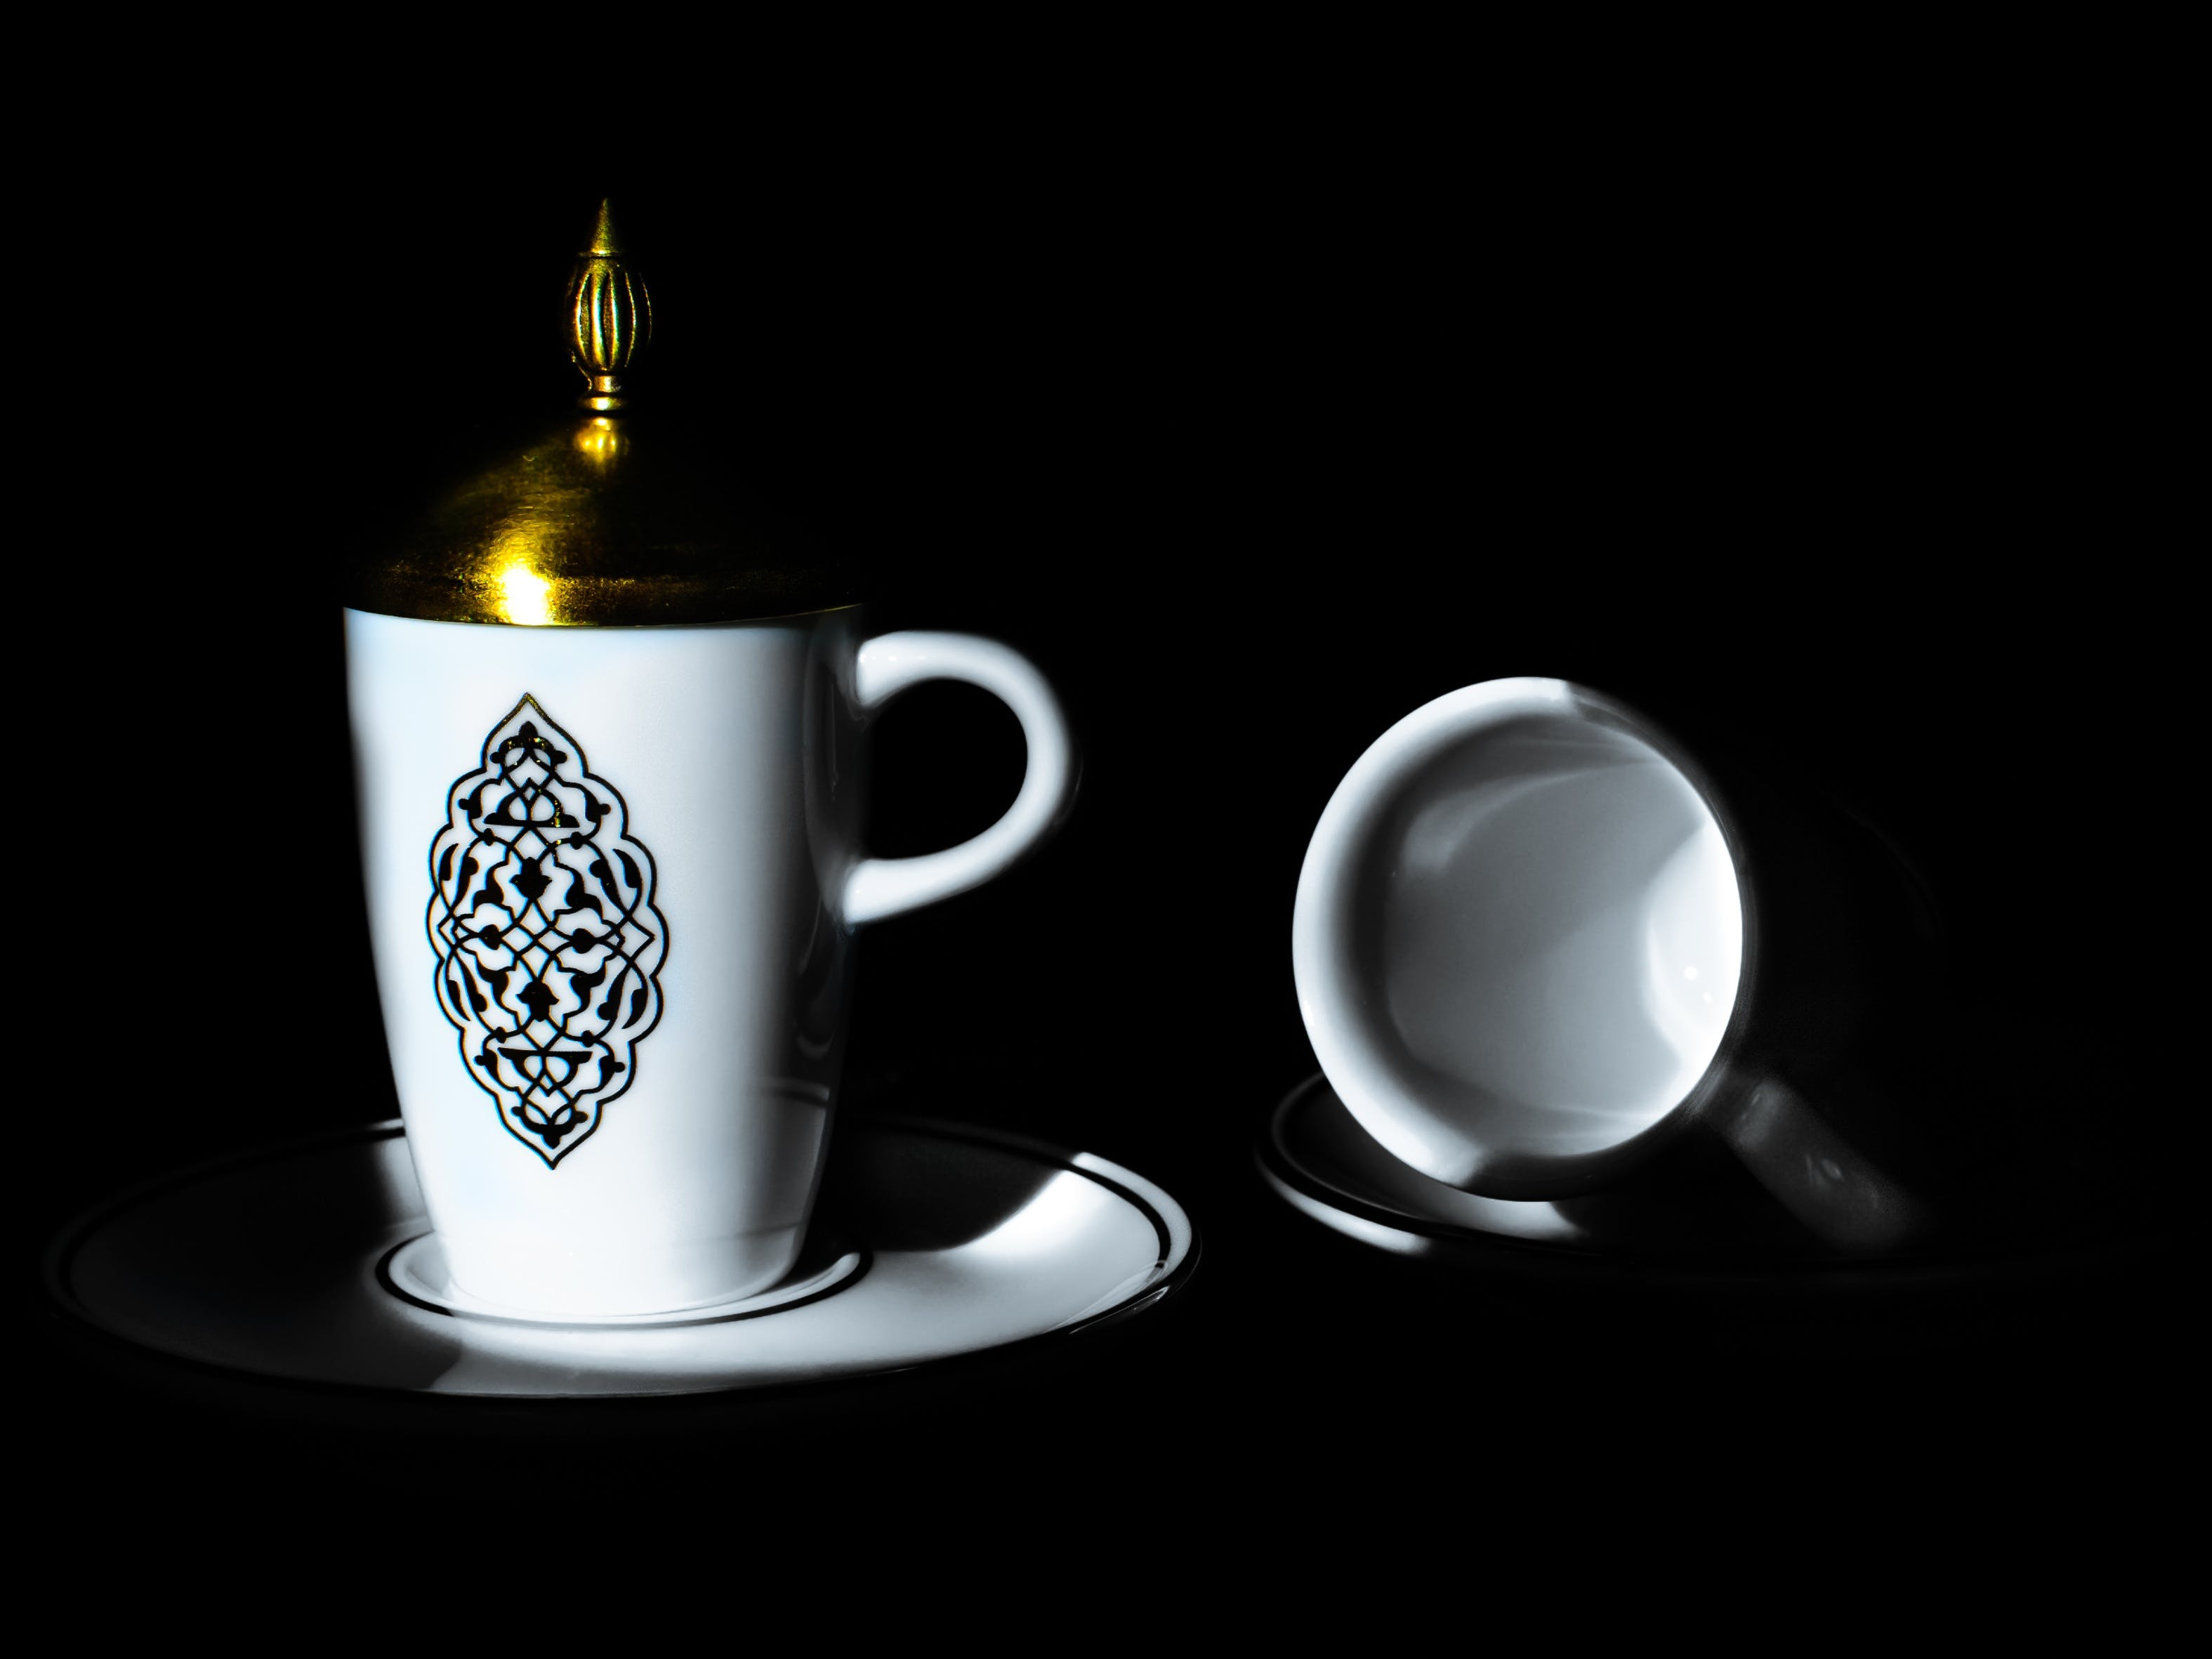 White and Black Ceramic Mug With Brass-colored Lid